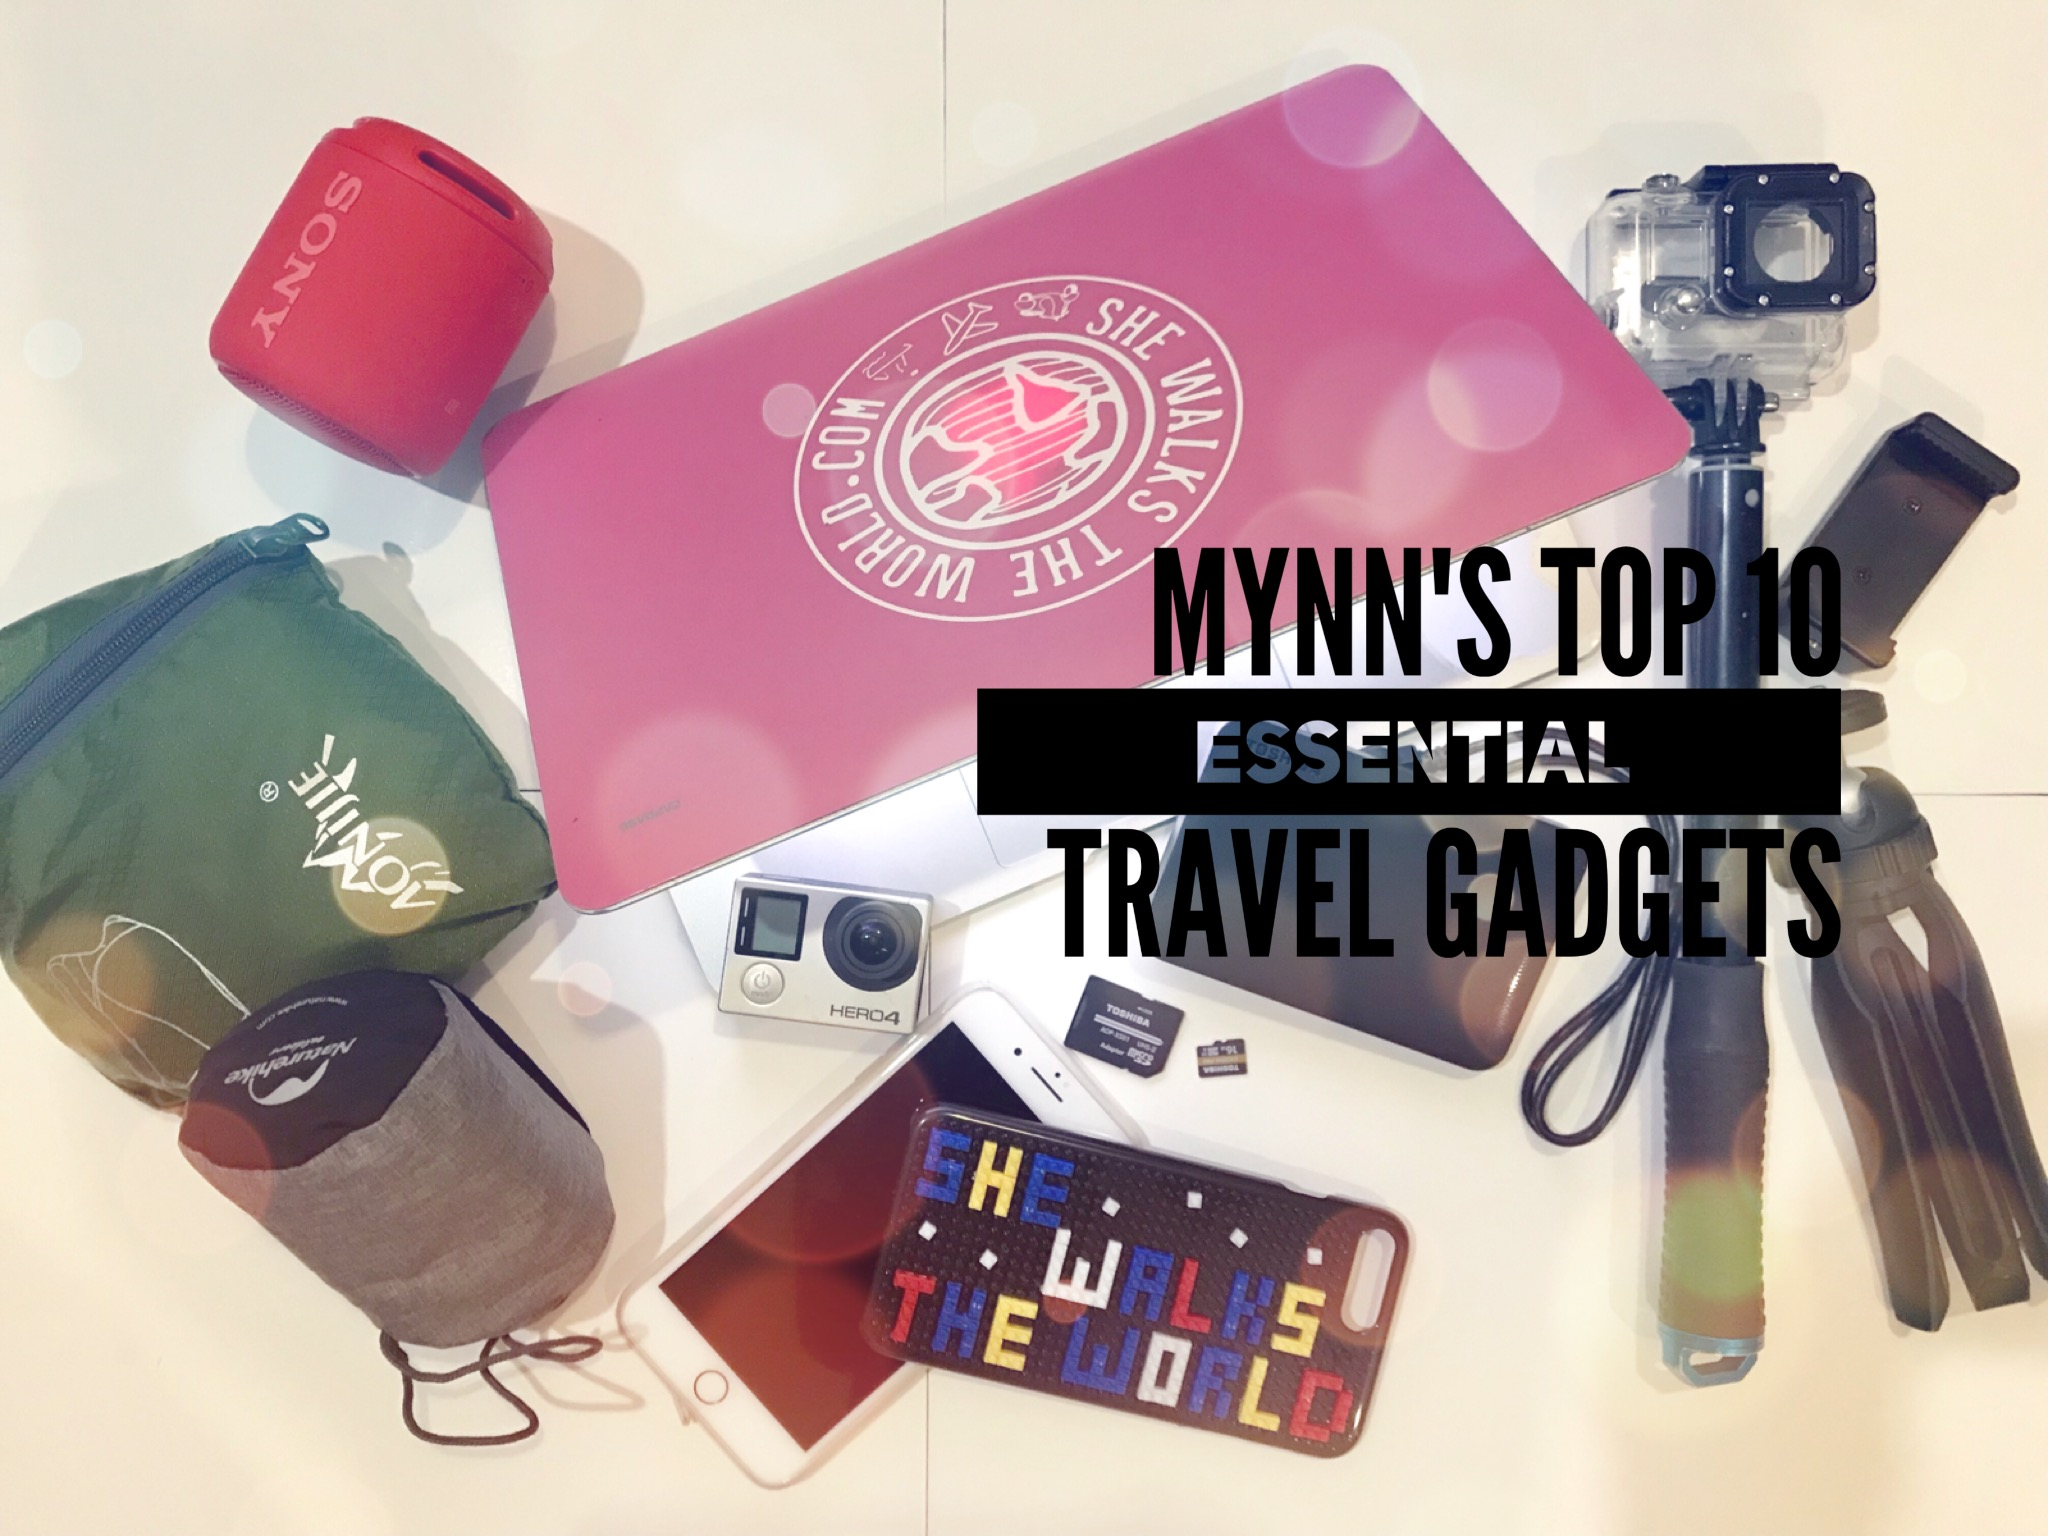 Mynn's Top 10 Essential Travel Gadgets